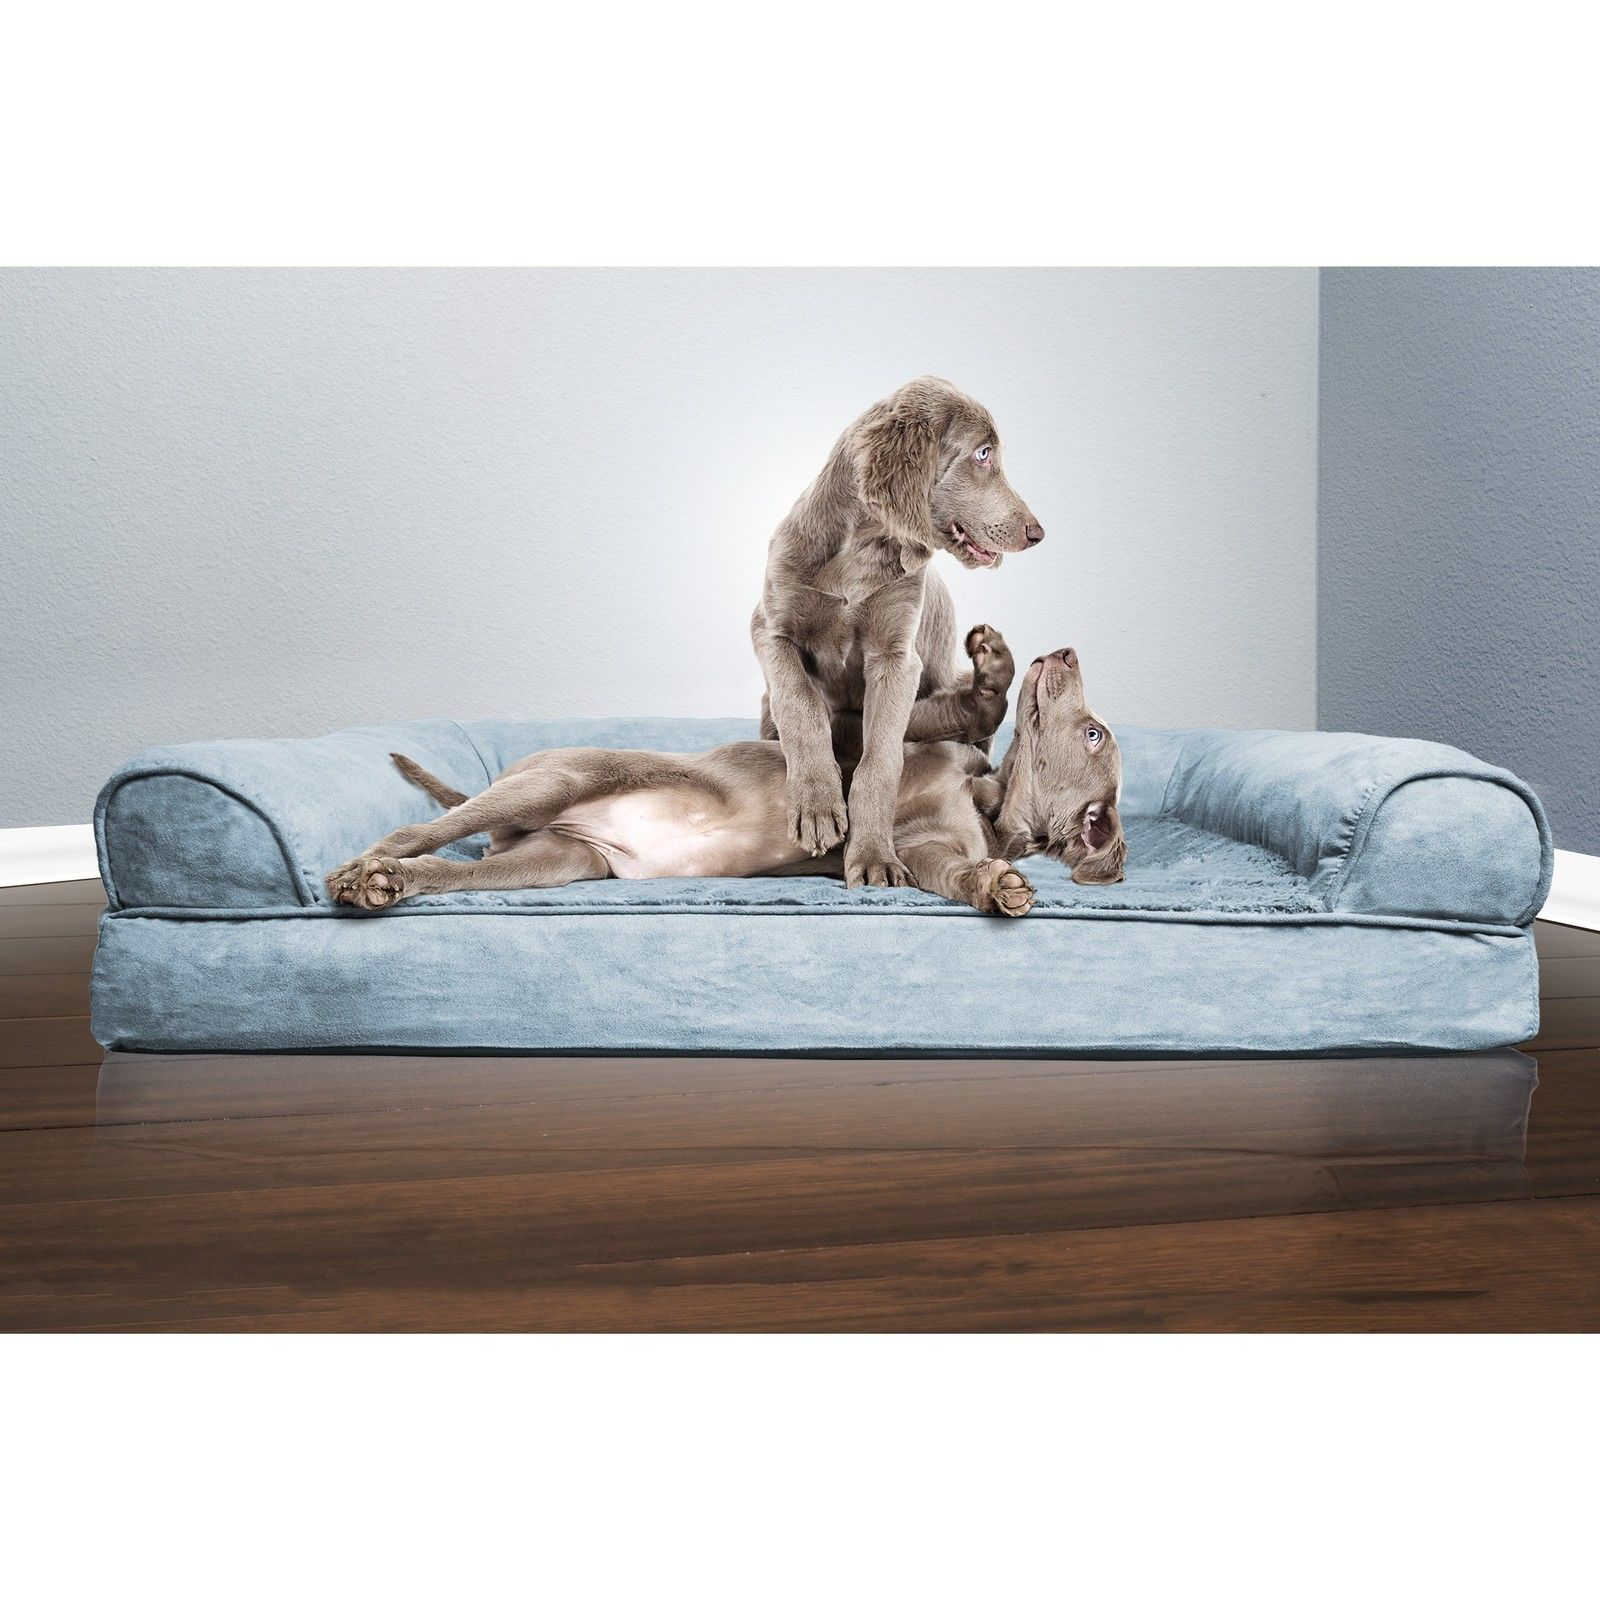 Large Dog Bed Sofa Pet Luxury Plush Suede Orthopedic Bolster Cushion Puppy Blue